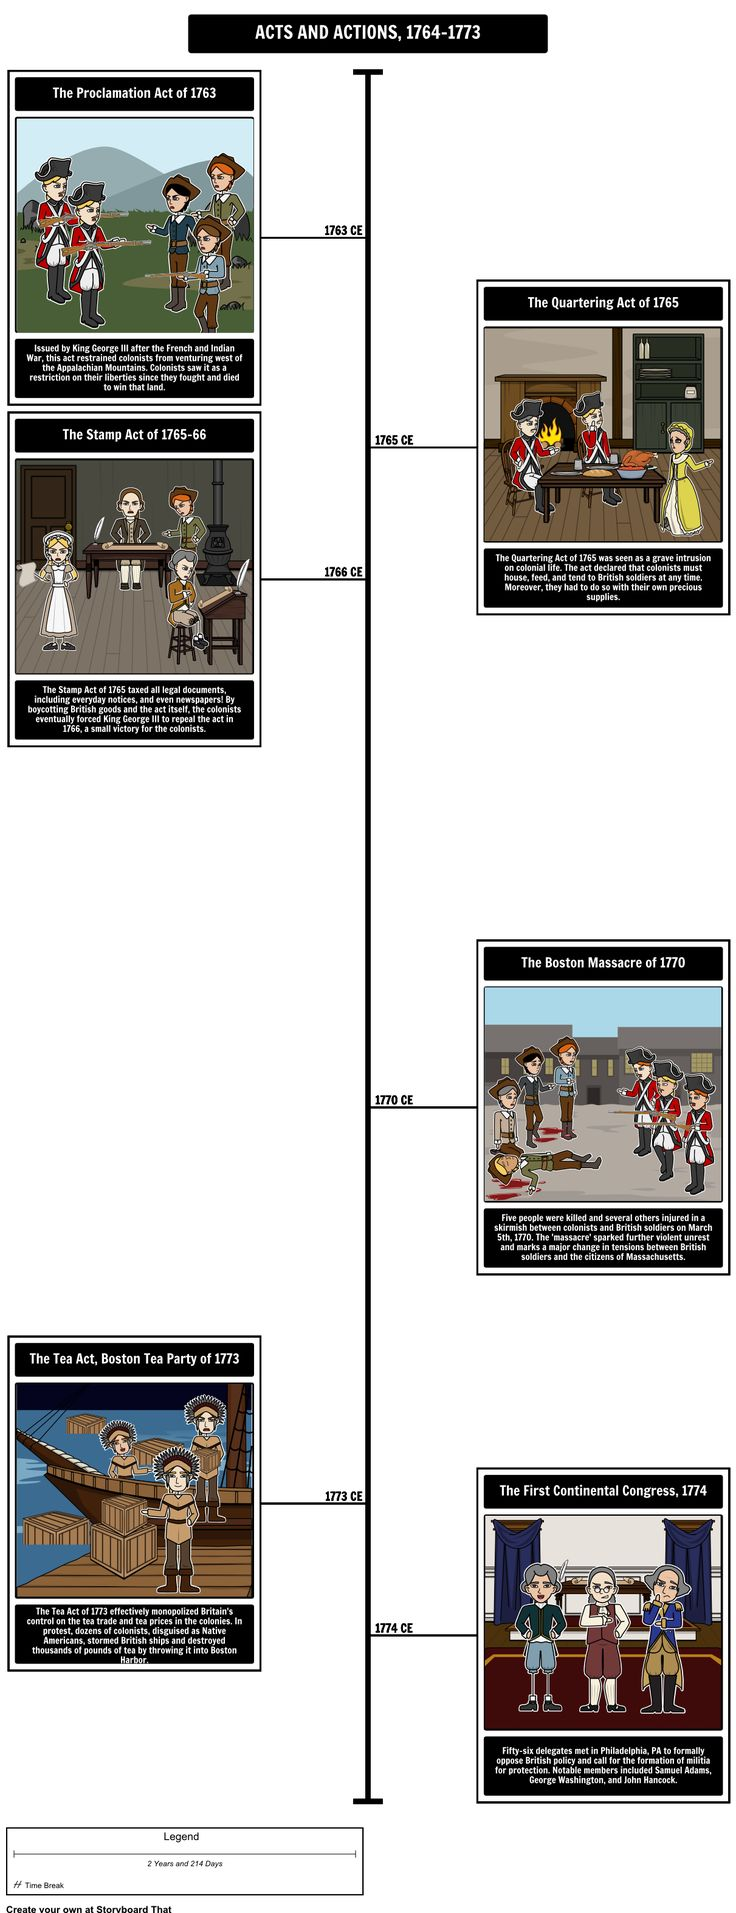 Causes of the American Revolution - Acts and Actions of the 13 American Colonies: Using our timeline layout, students will analyze and explain events and actions taken by the British, as well as reactions and actions taken by the colonists in response to British policy.